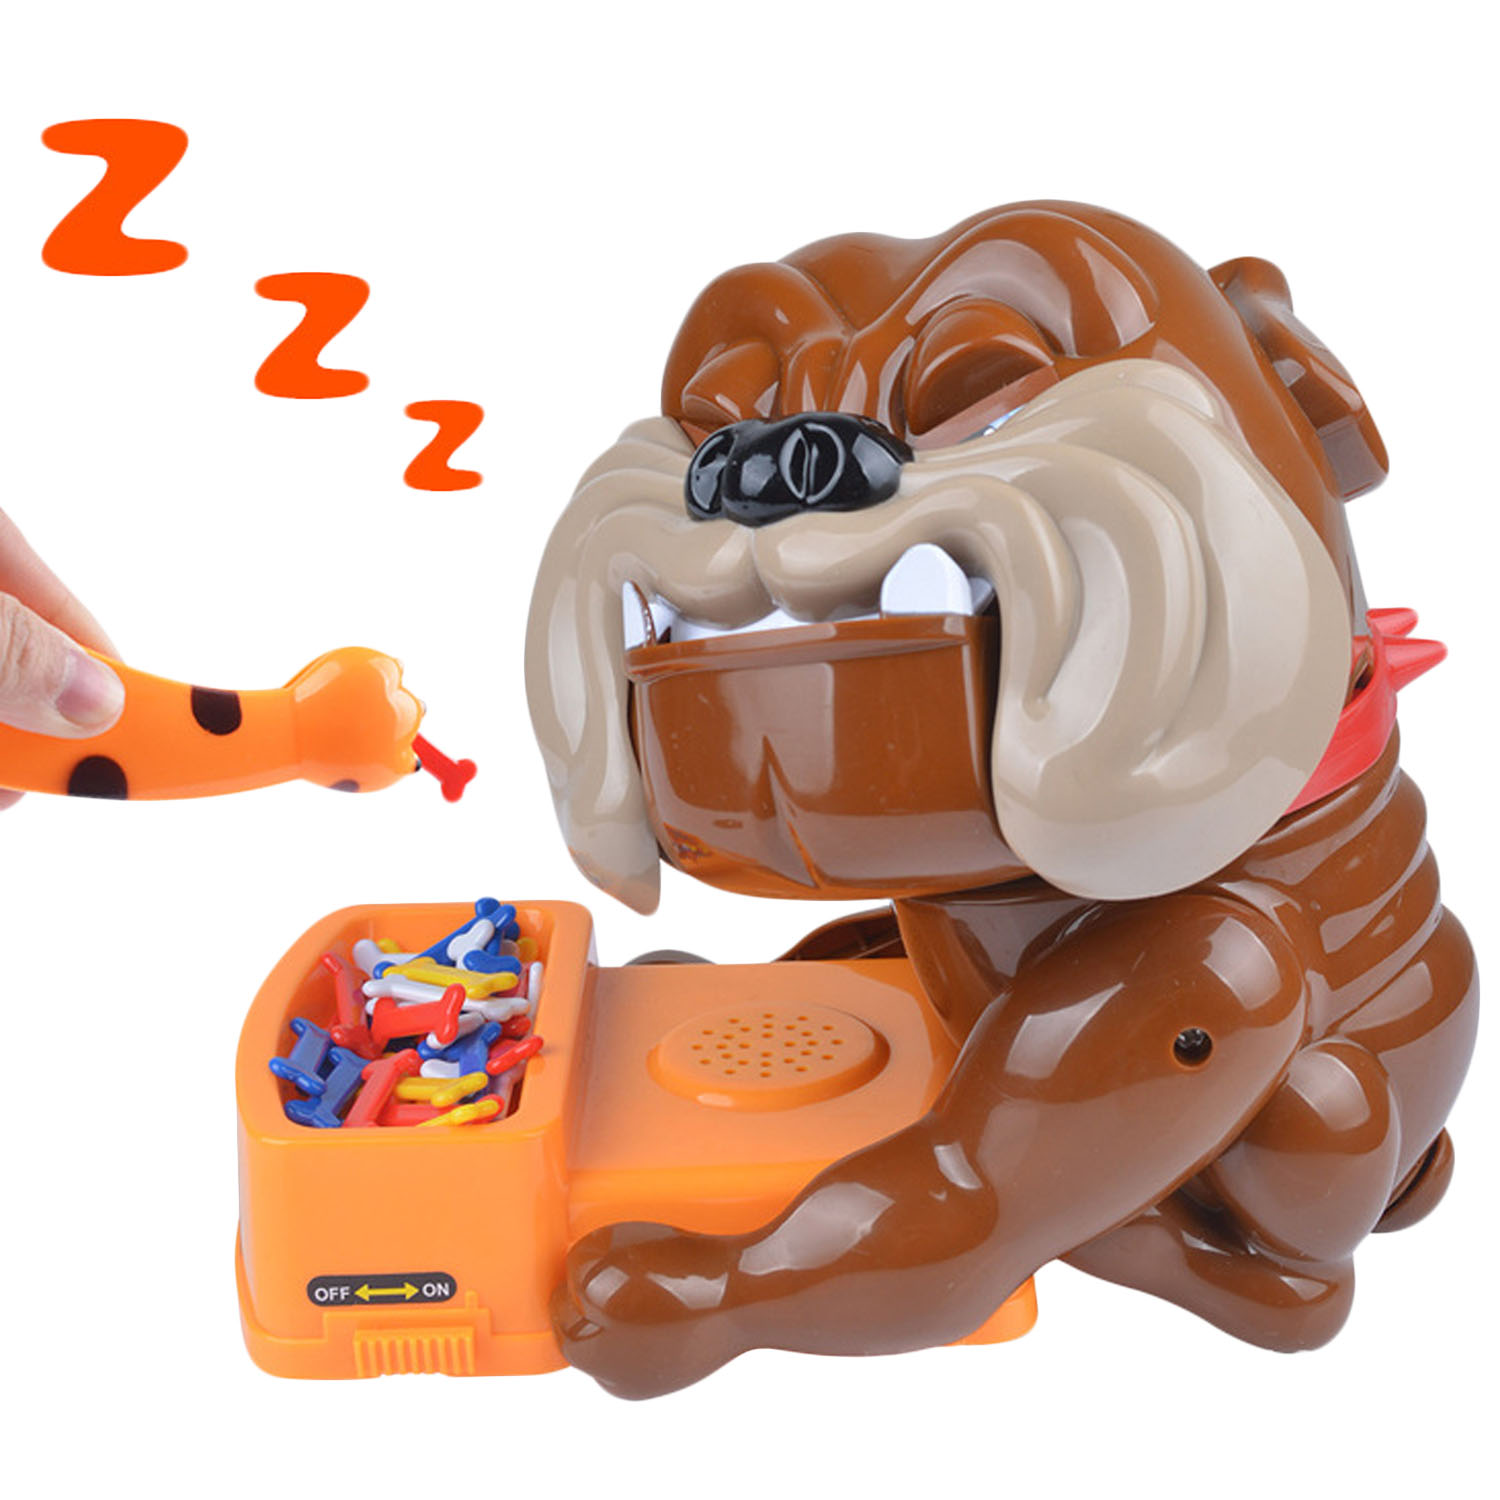 Besegad Funny Tricky Games Bad Dog Bone Action Games Toy Wake Dog Toys For Party Family Parents Kids Friends